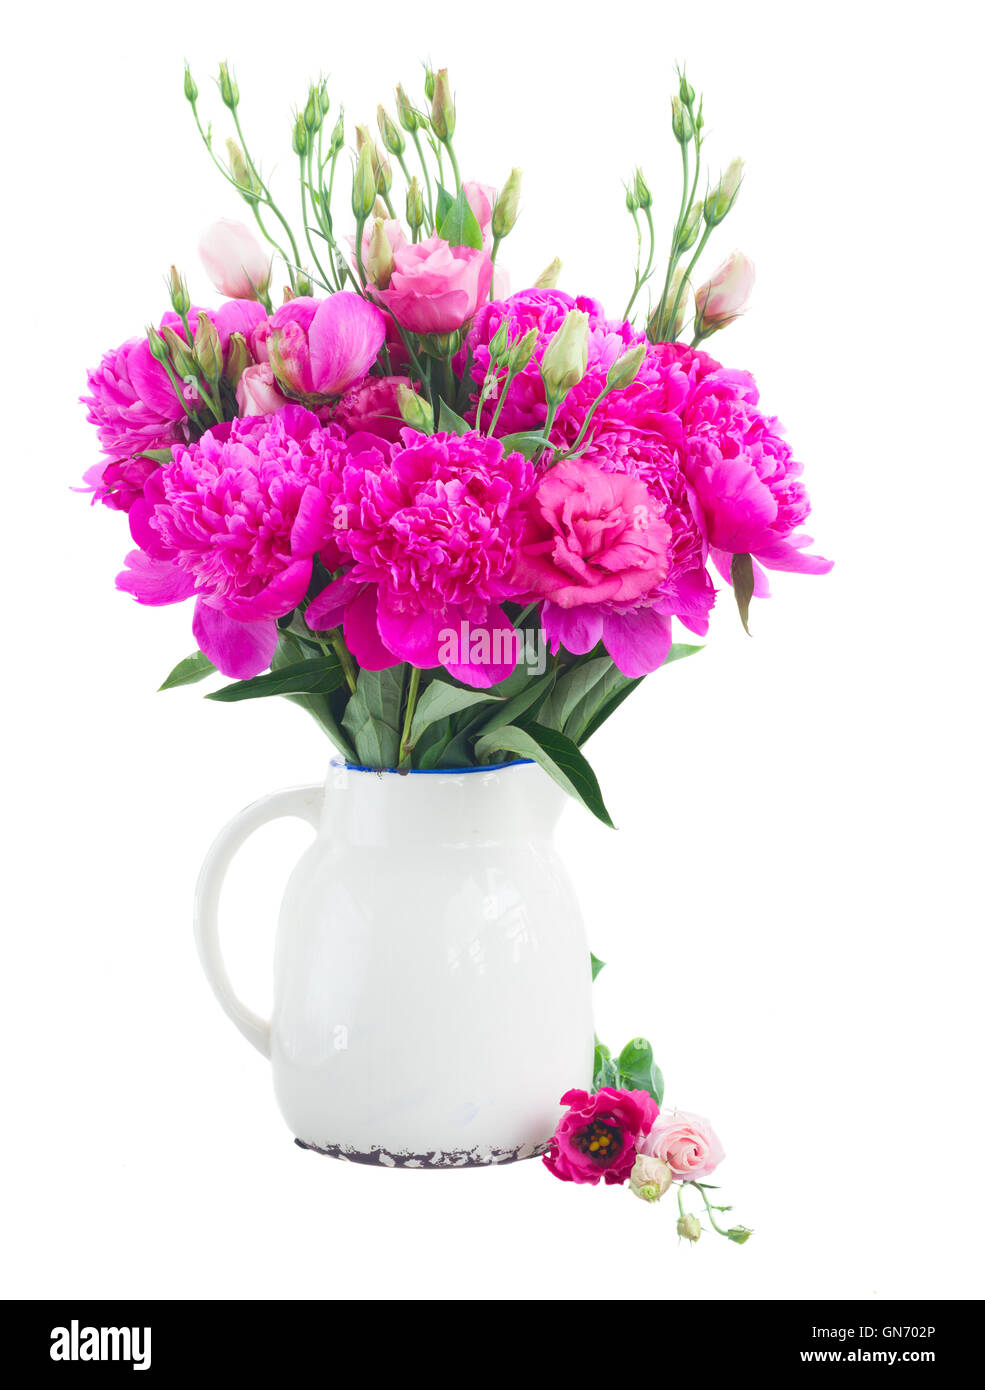 Bright pink peony and eustoma flowers - Stock Image